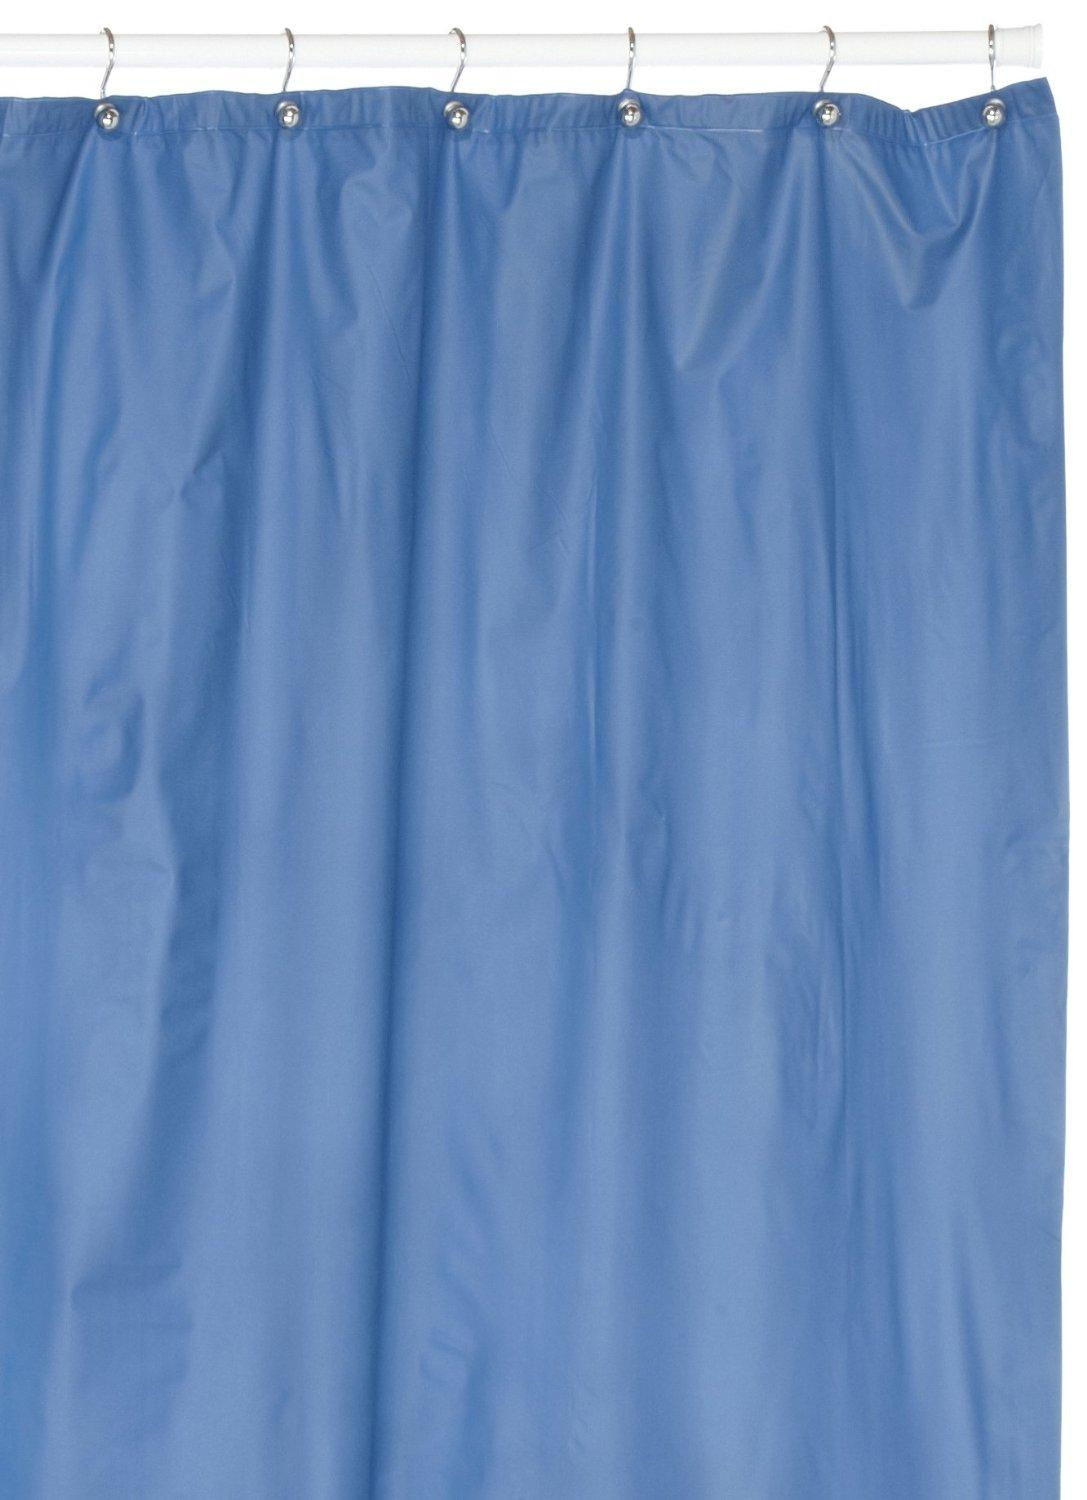 Solid Blue Shower Curtain Elegant Shower Curtains View In Gallery